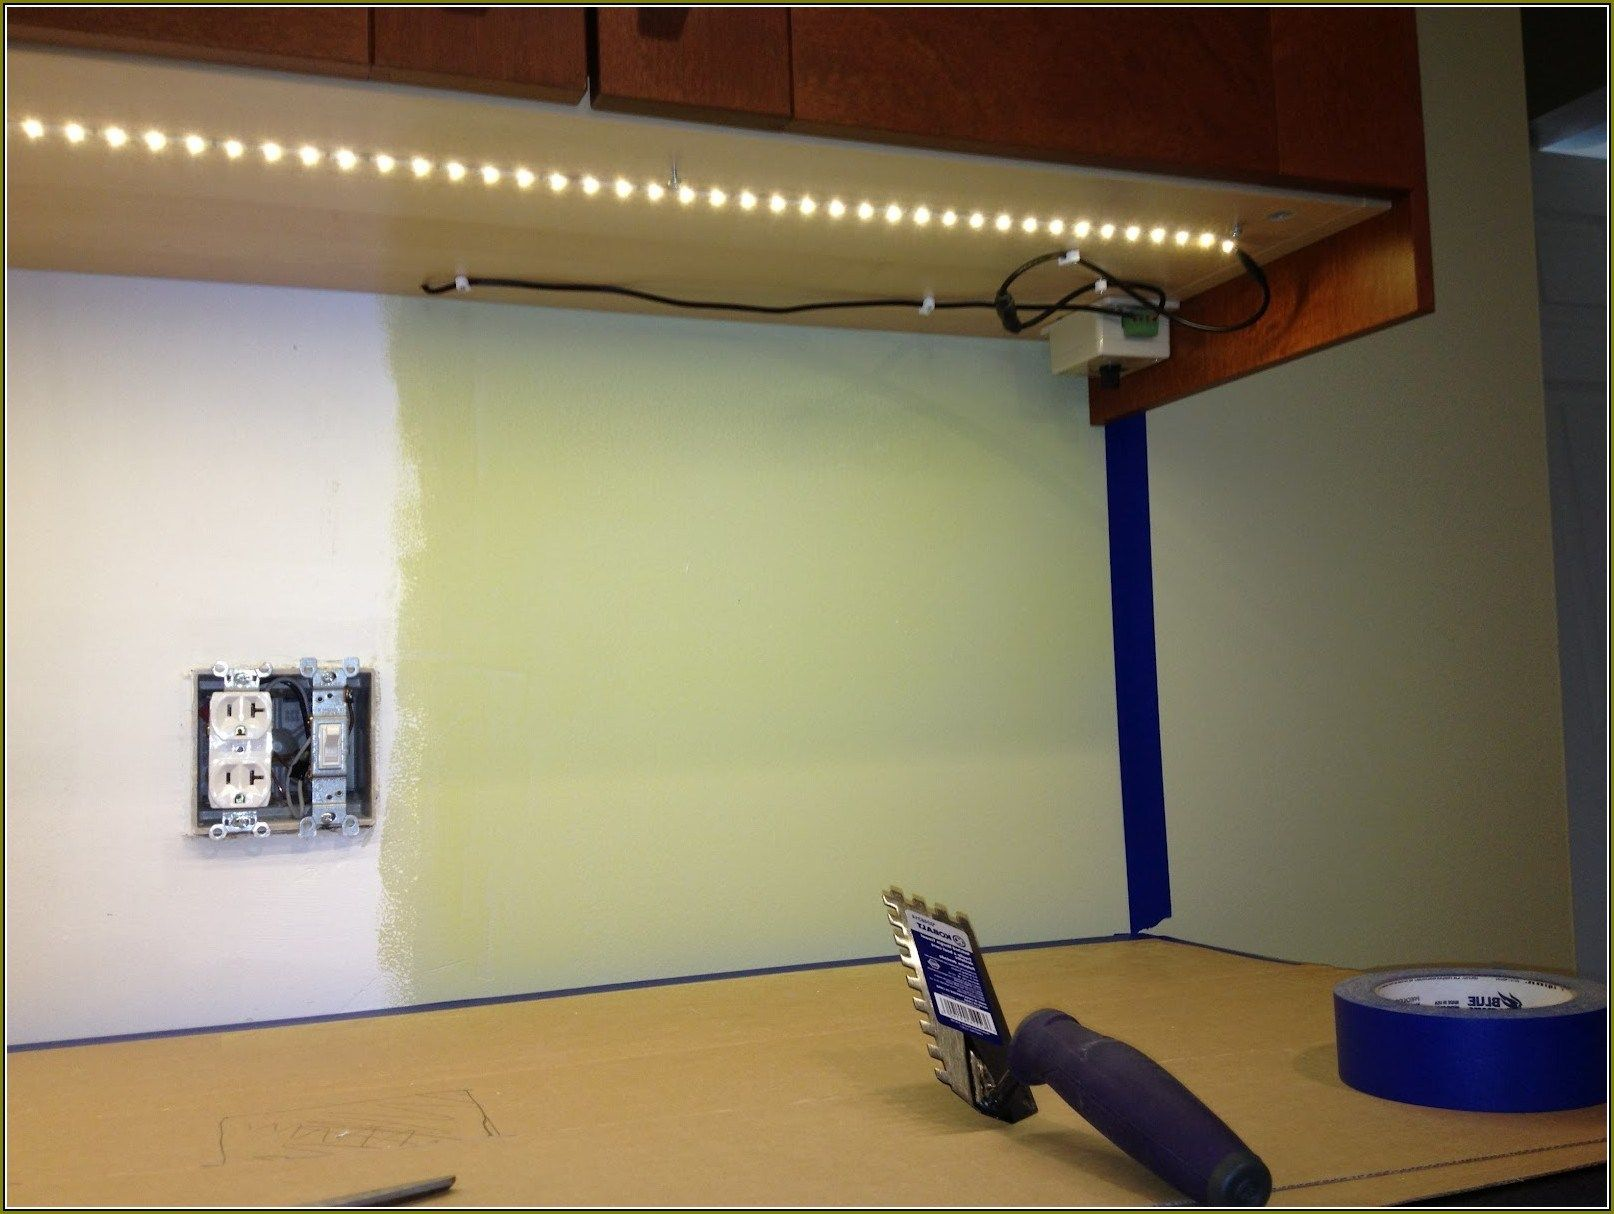 Under Cabinet Lighting Without Wiring Led Cabinet Lighting Led Under Cabinet Lighting Kitchen Lighting Design